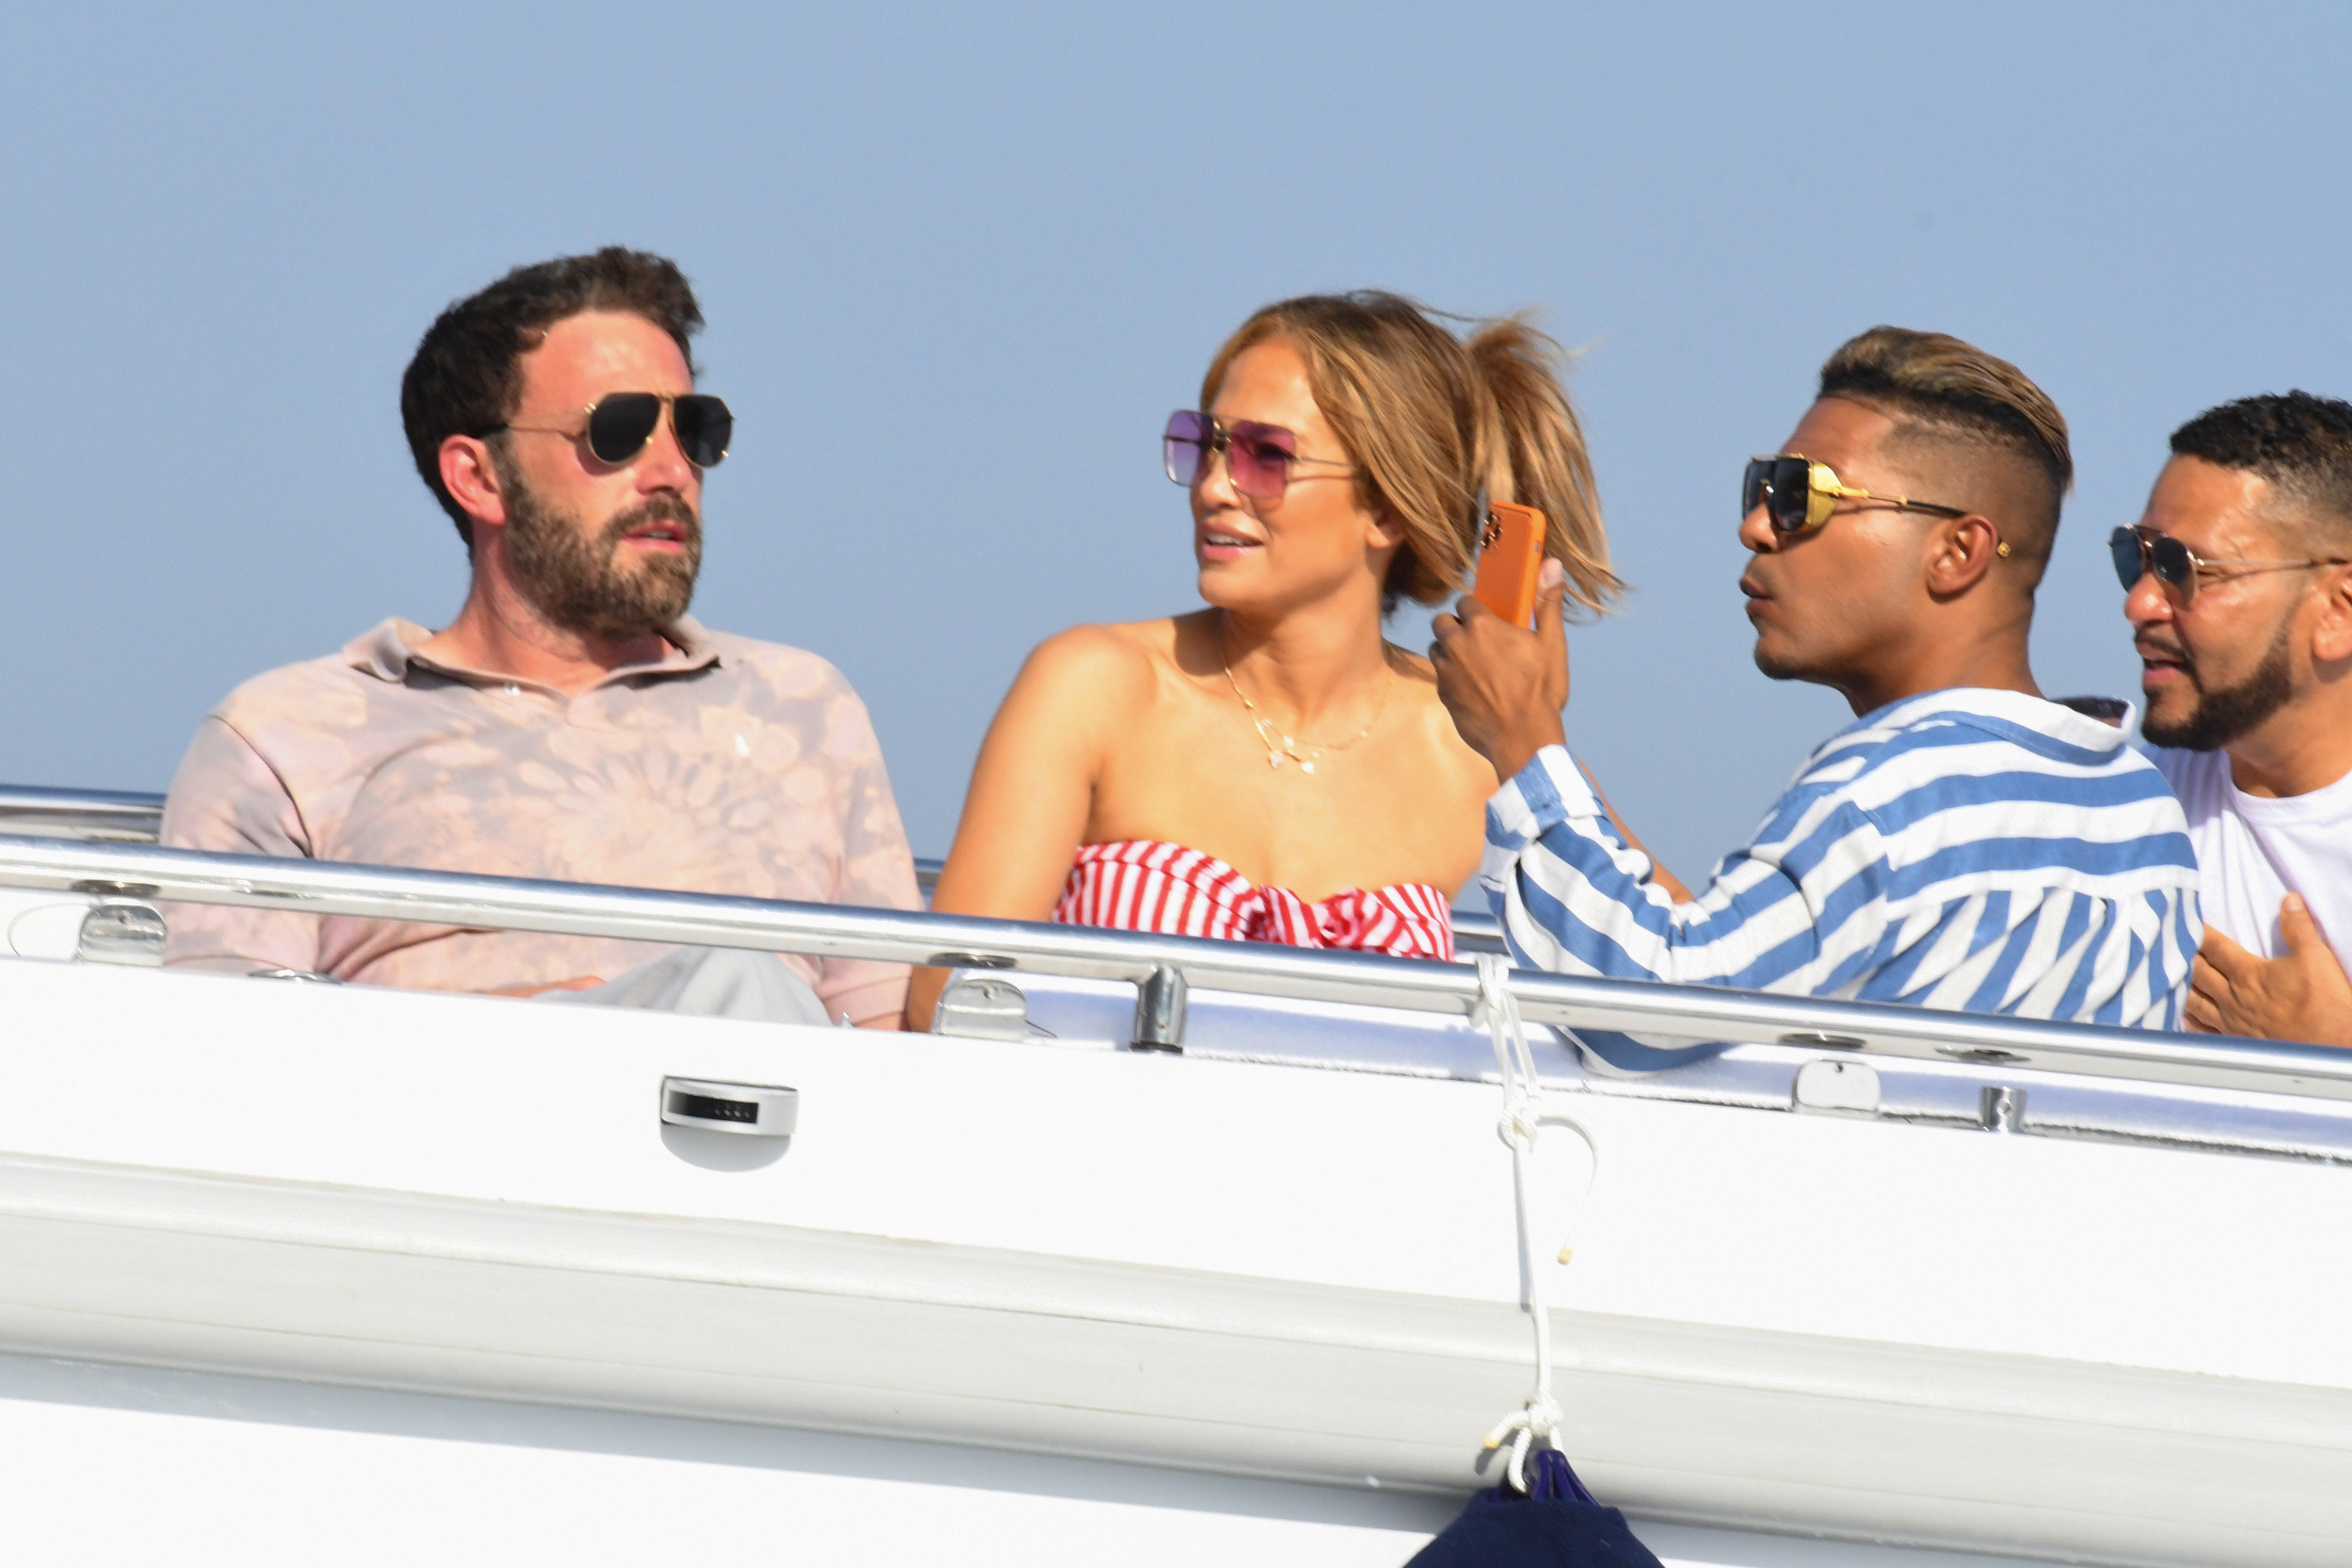 Ben Affleck and Jennifer Lopez are photographed on a boat in Amalfi, Italy